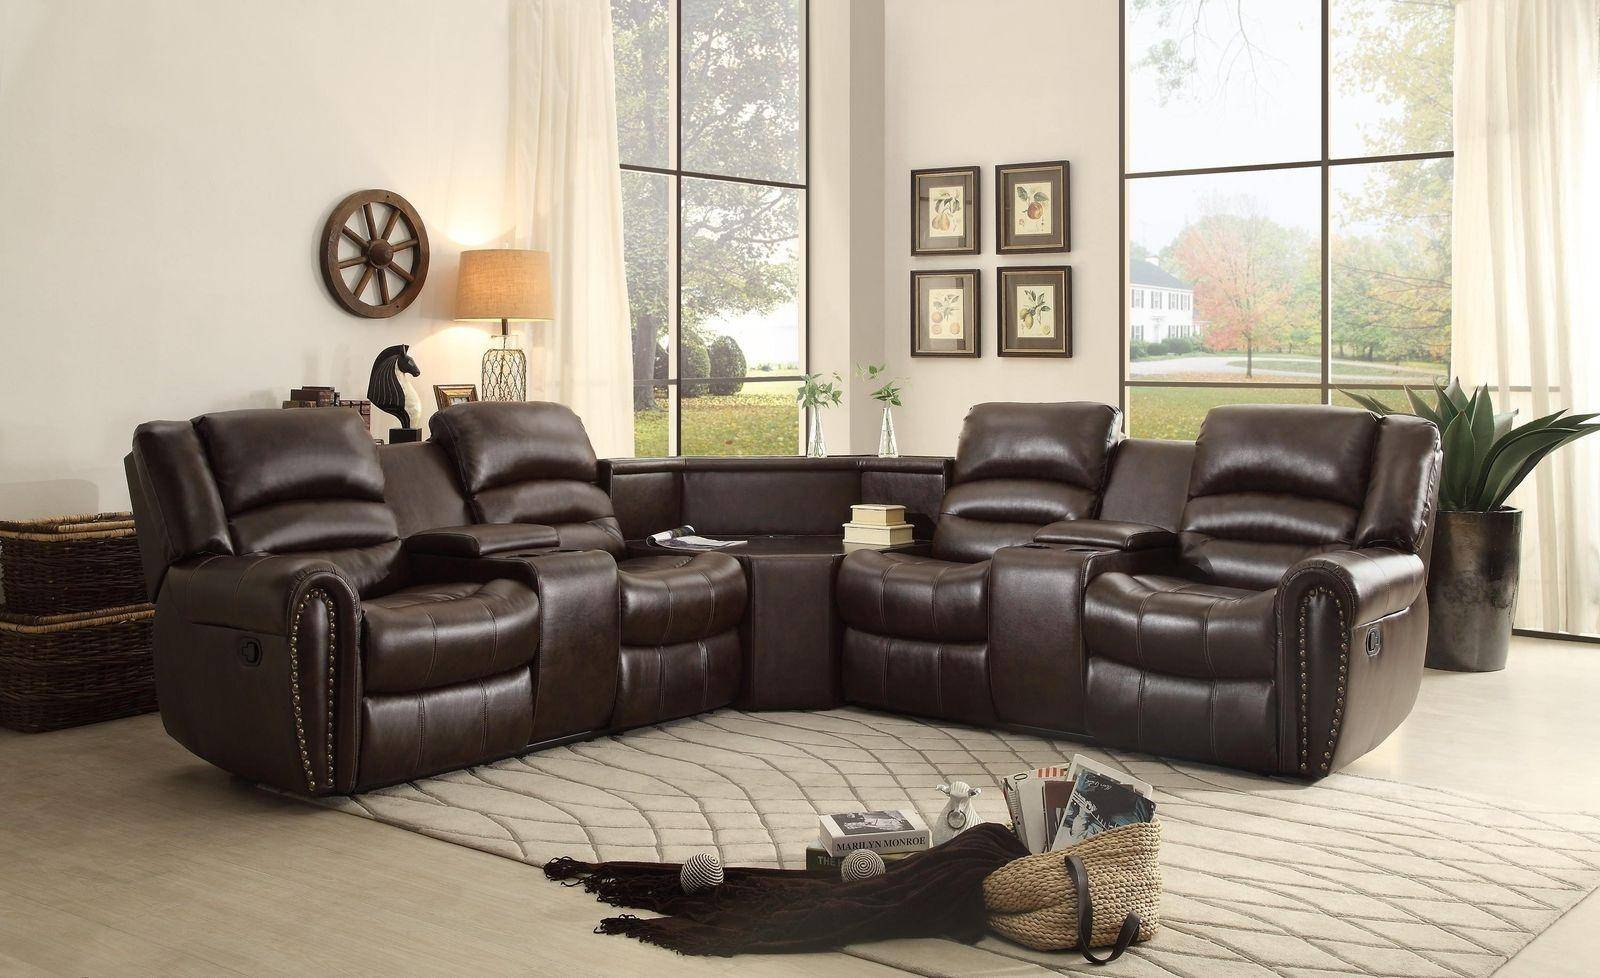 5 Best Reclining Sofas (Nov. 2019) – Reviews & Buying Guide